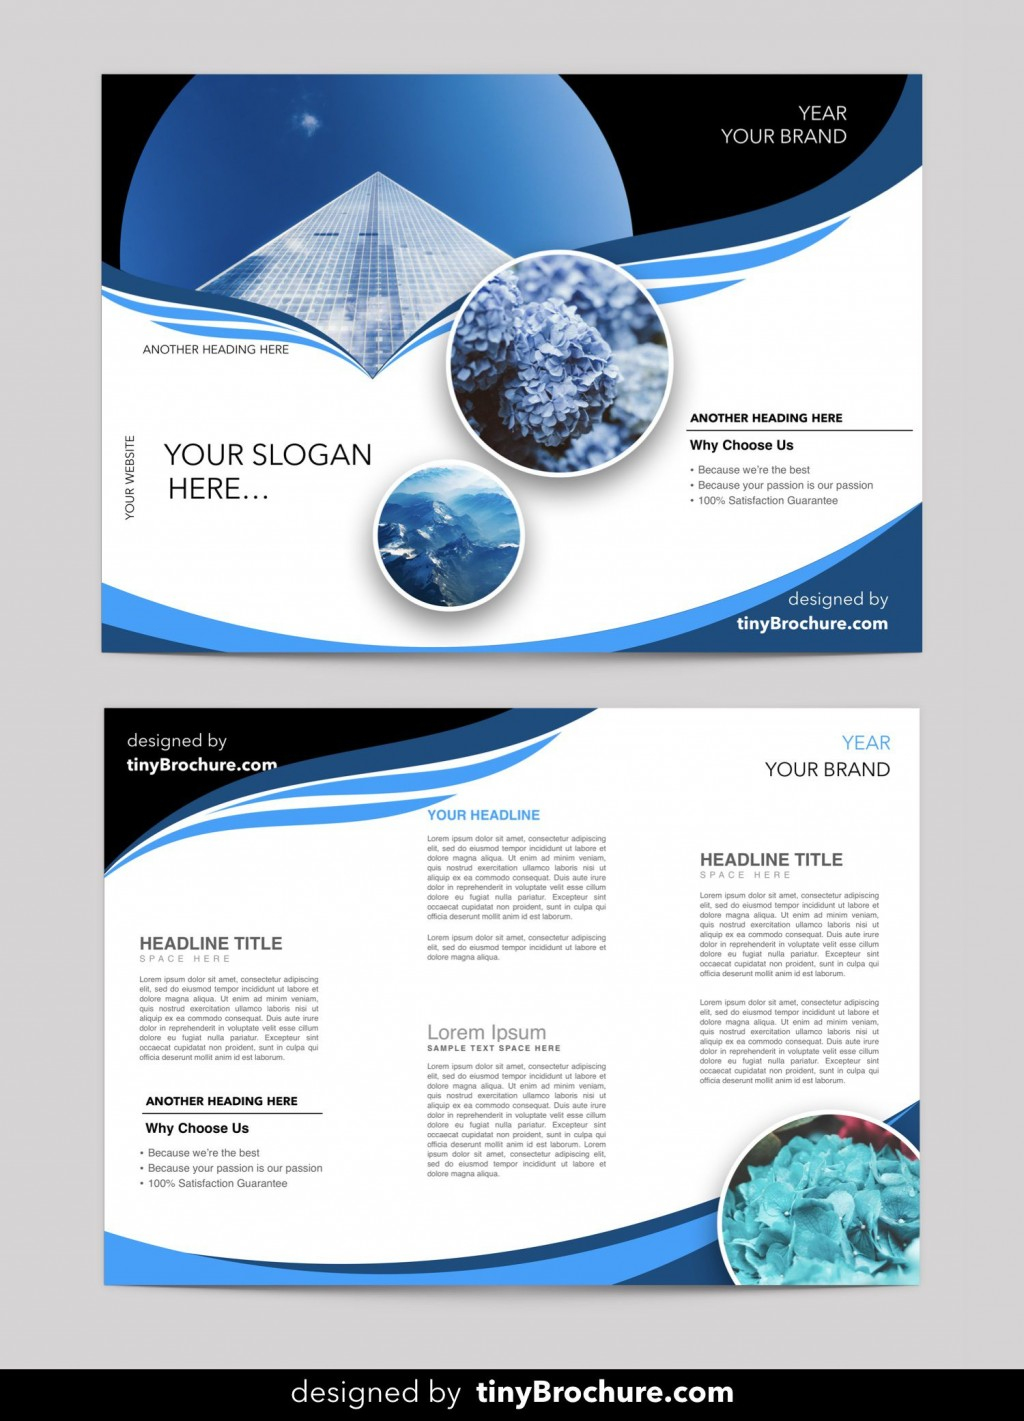 002 Dreaded Brochure Template Free Download Design  Microsoft Publisher Corporate Psd For Adobe IllustratorLarge